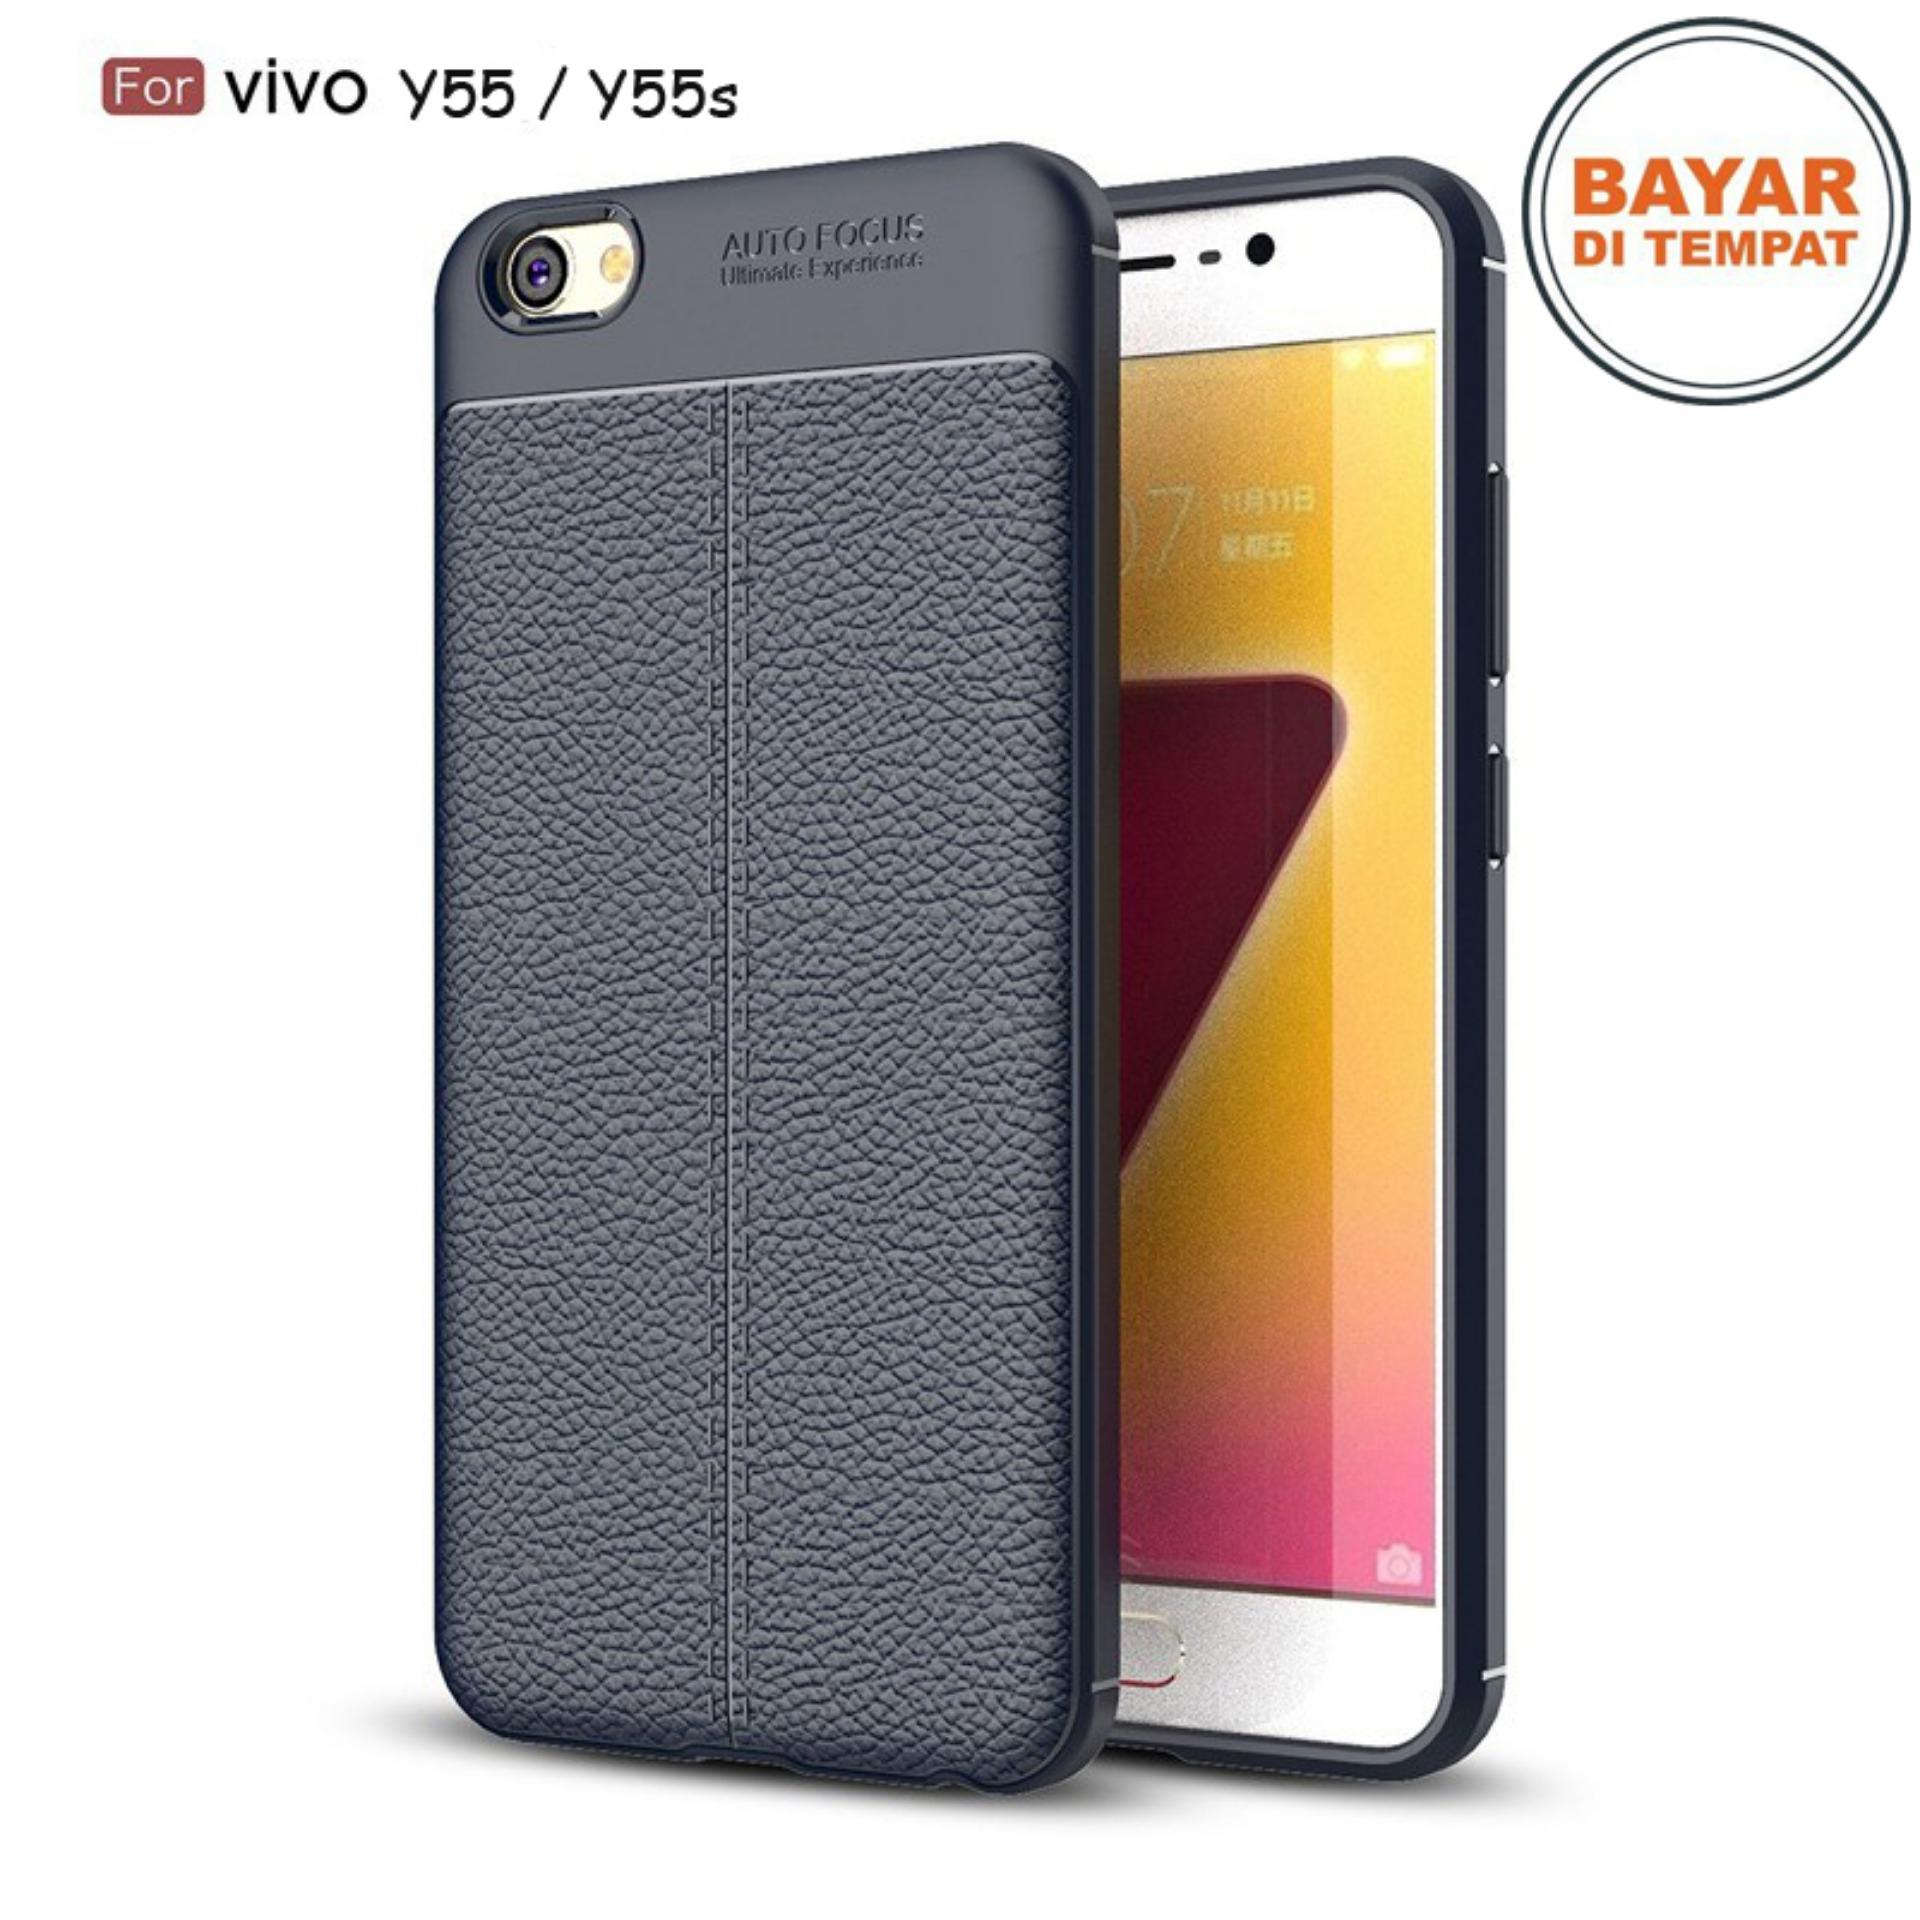 JAK - Softcase Leather / Case Auto Focus / Case Ultimate for Vivo Y55 / Y55s